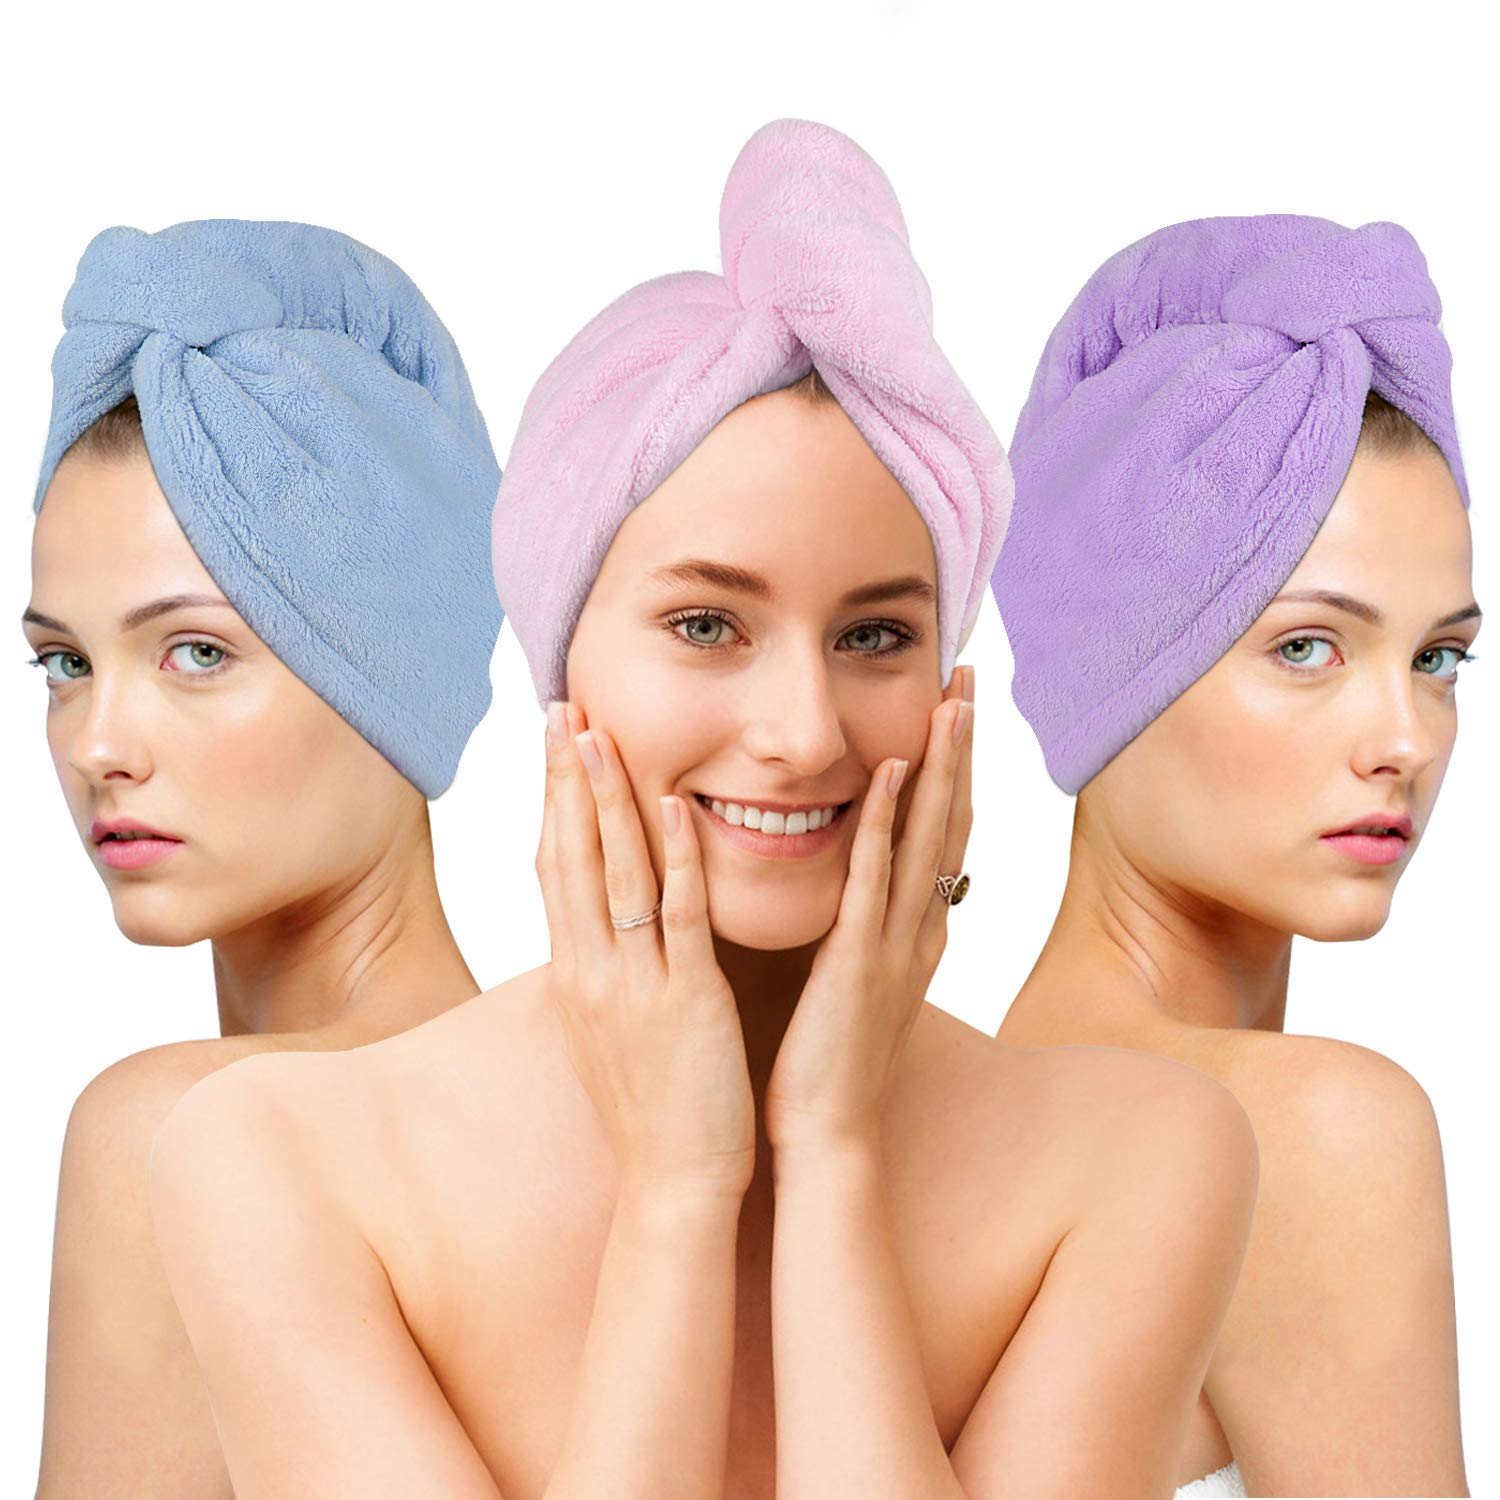 Hair Towels Wrap 3 Packs Microfiber Hair Drying Towels Super Absorbent Hair Towel Wrap Turban for Women and Girls Quick Magic Dryer, Dry Hair Hat,Bathing Wrapped Cap by KKIV